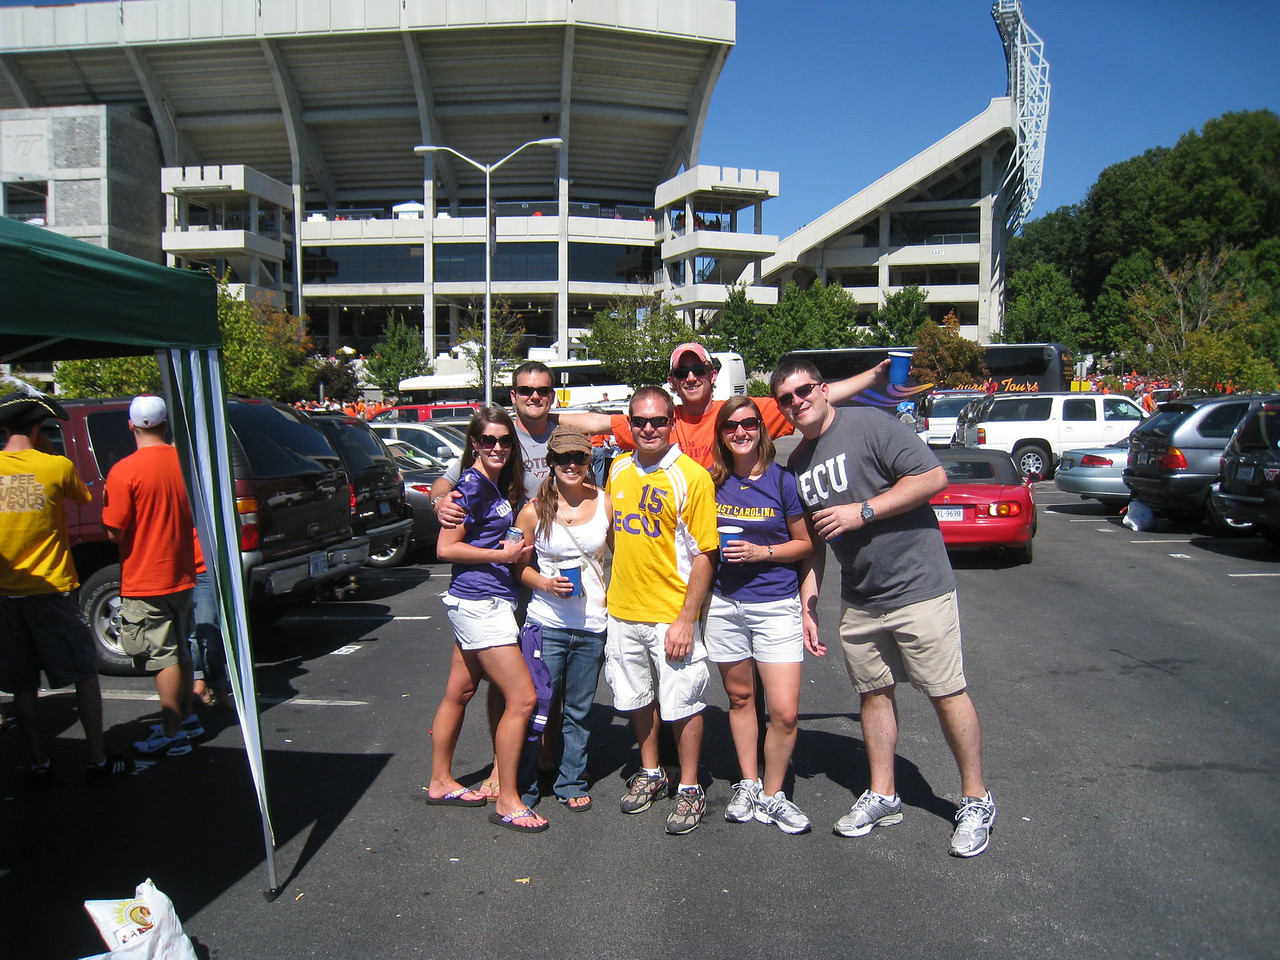 9/18/2010 ECU @ VT - Beth, Chris, Sarah, Jon, Cat, Mike